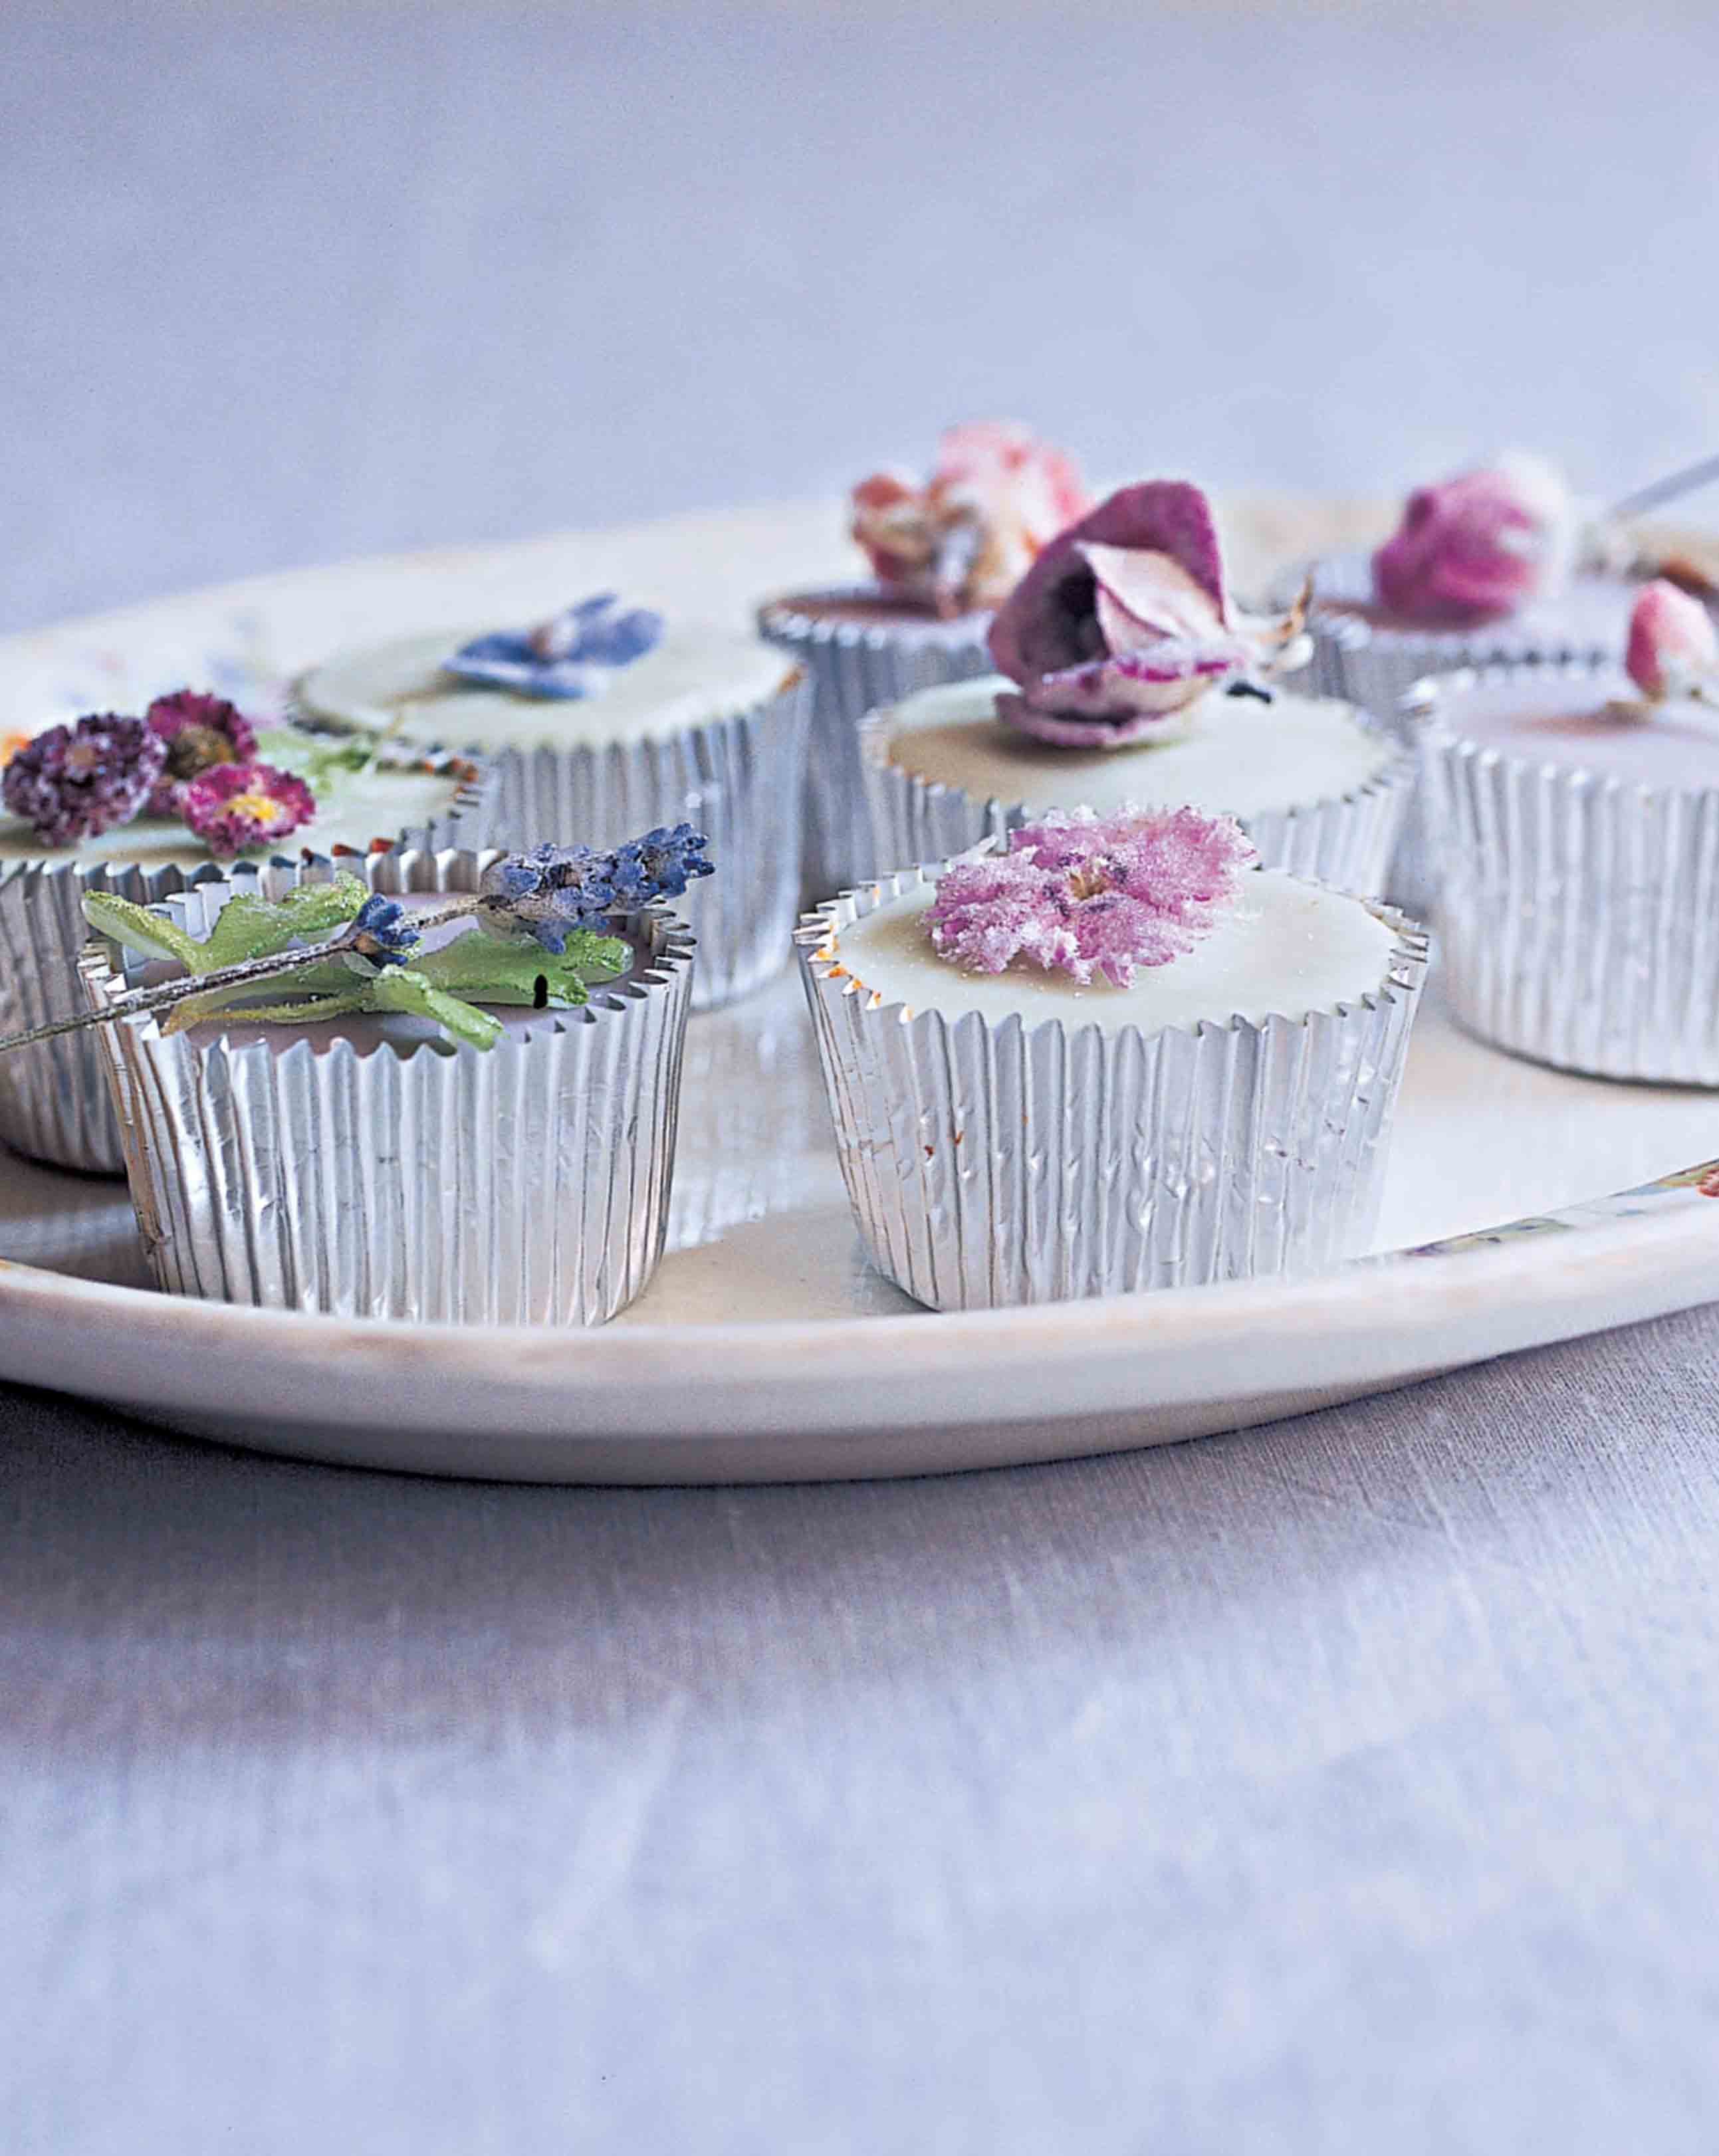 Crystallised flower fairy cakes